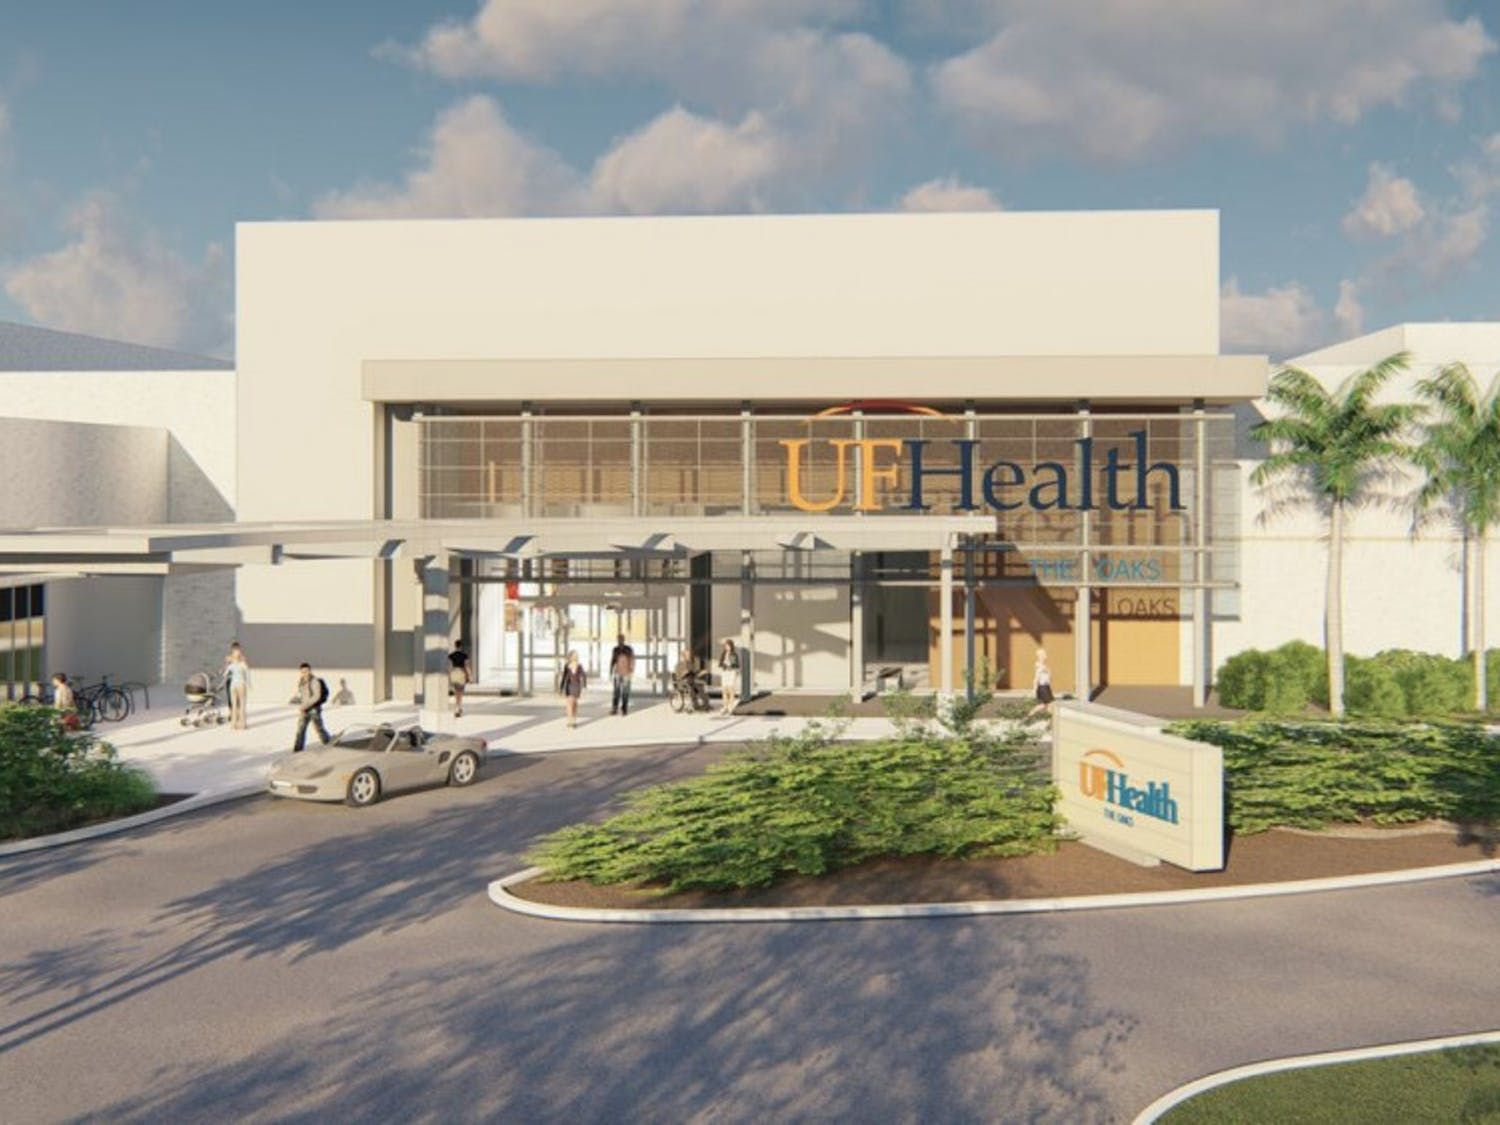 A conceptual rendering predicts how the new facilities will look.